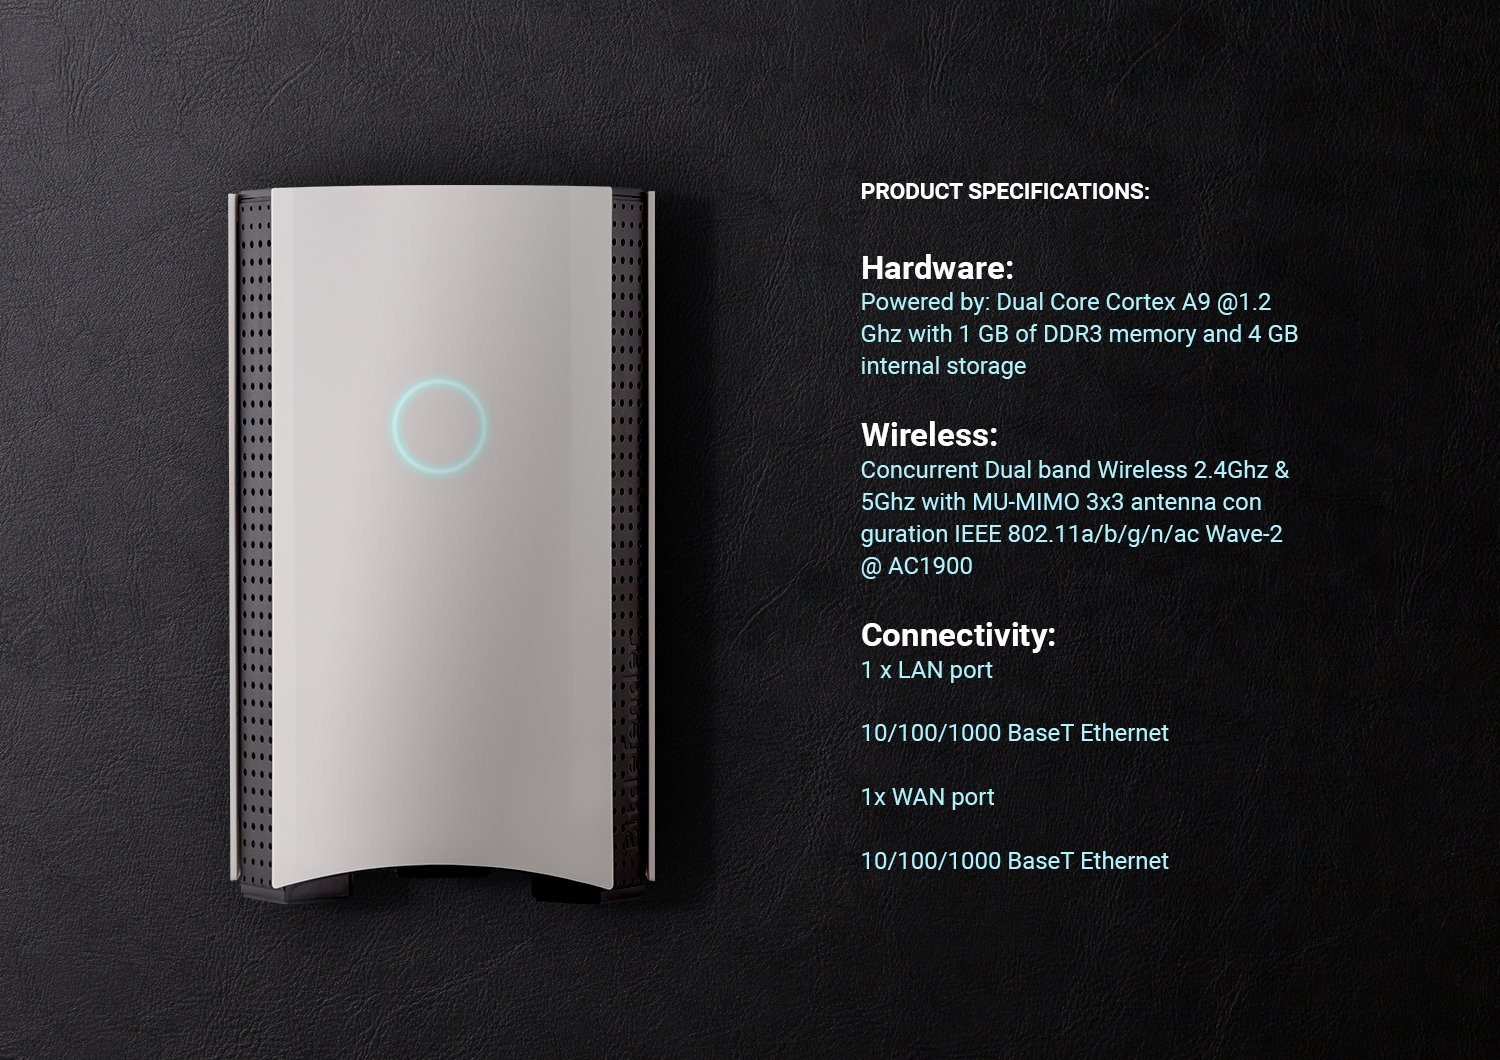 Bitdefender BOX 2 (Latest Version) - Complete Home Network Protection for Your WiFi, Computers, Mobile/Smart Devices and More, Including Alexa and Google Assistant Integration - Plugs Into Your Router 8 Plugs into your (Non-Mesh/Non Google WiFi) router and protects an unlimited number of Wi-Fi and internet connected devices Includes free unlimited BOX support and product setup (a $39.99 value). Before buying, please make sure that your Router can be configured to AP (access point) mode or Bridge mode otherwise BOX 2 will not work BOX automatically detects and optimizes for all your devices during the first 48 hour post-install window. Once complete, experience a protected network with speeds up to 1 Gbps thanks to the 1.2 GHz Dual Core processor and dual 1 Gbps ethernet ports